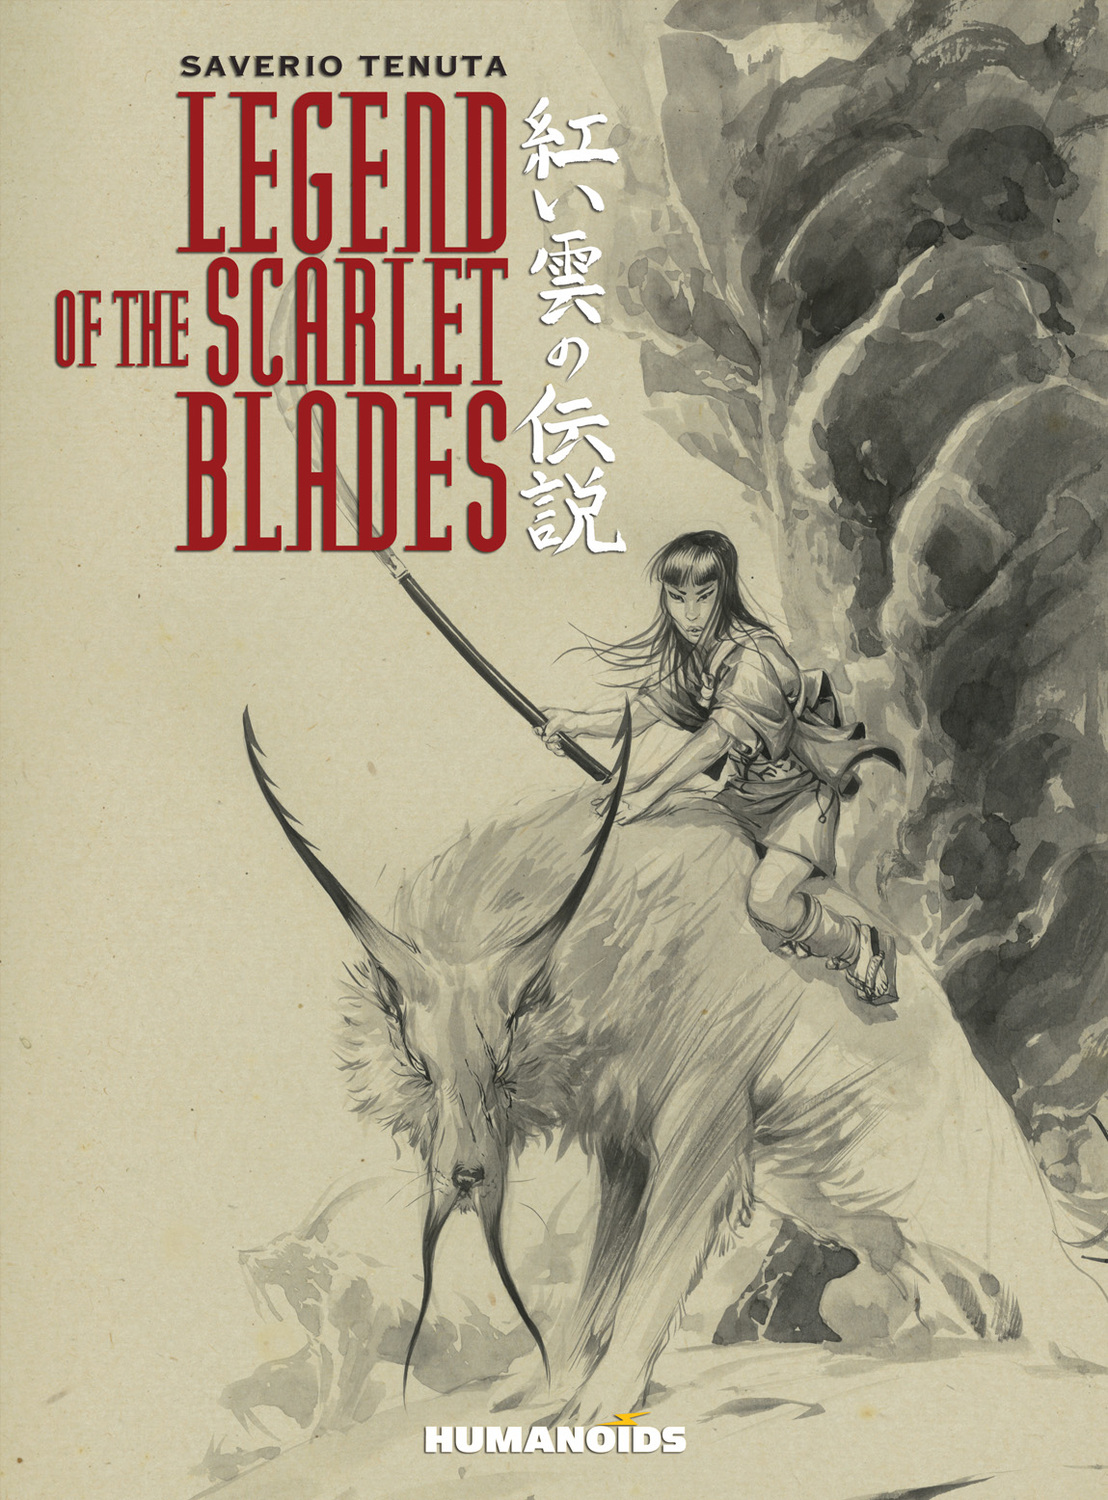 Legend of the Scarlet Blades the triumph of the sun